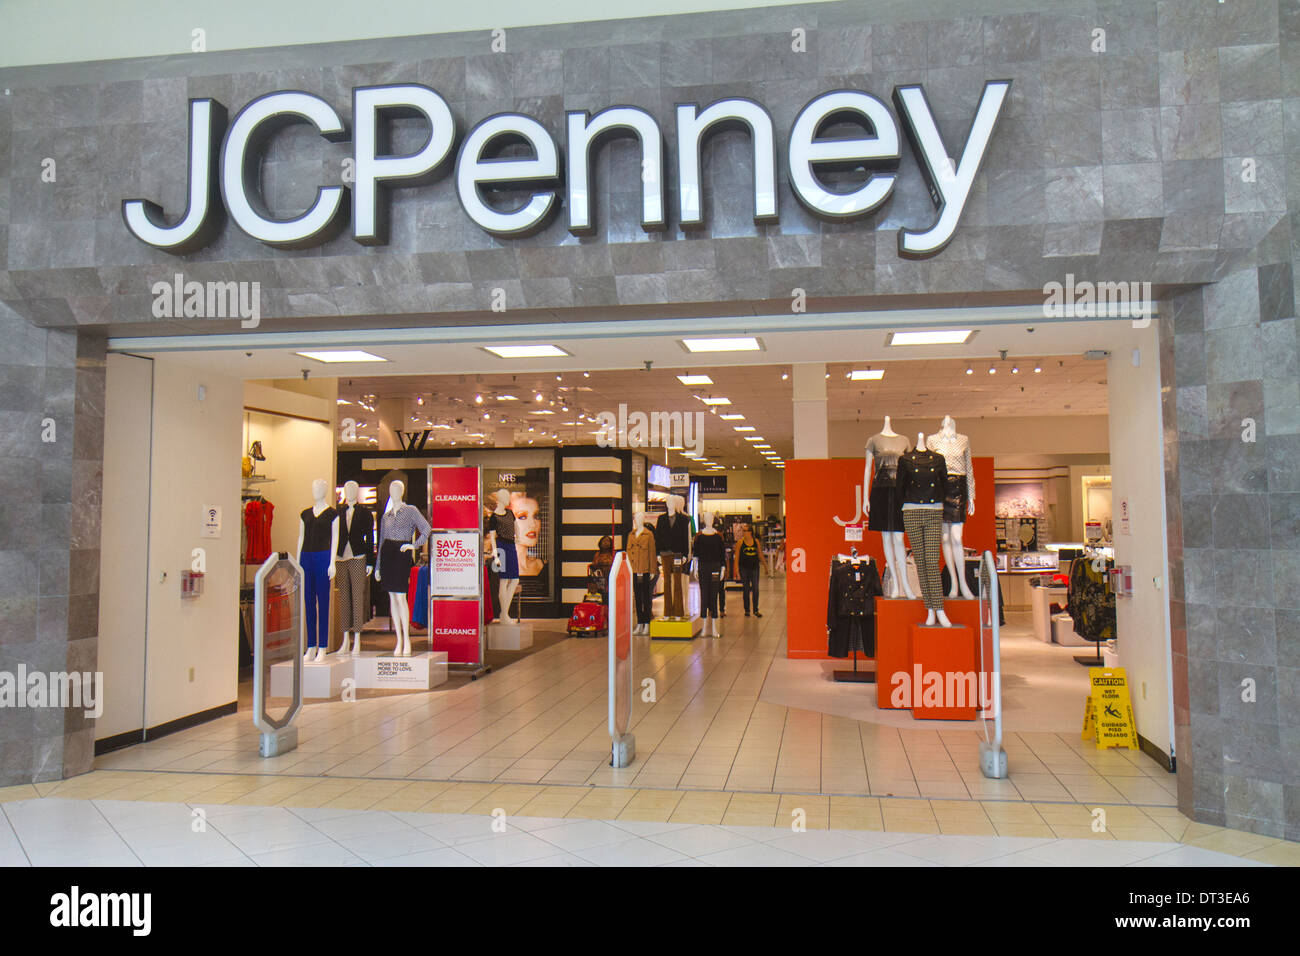 Mall Anchor Store Stock Photos & Mall Anchor Store Stock Images - Alamy